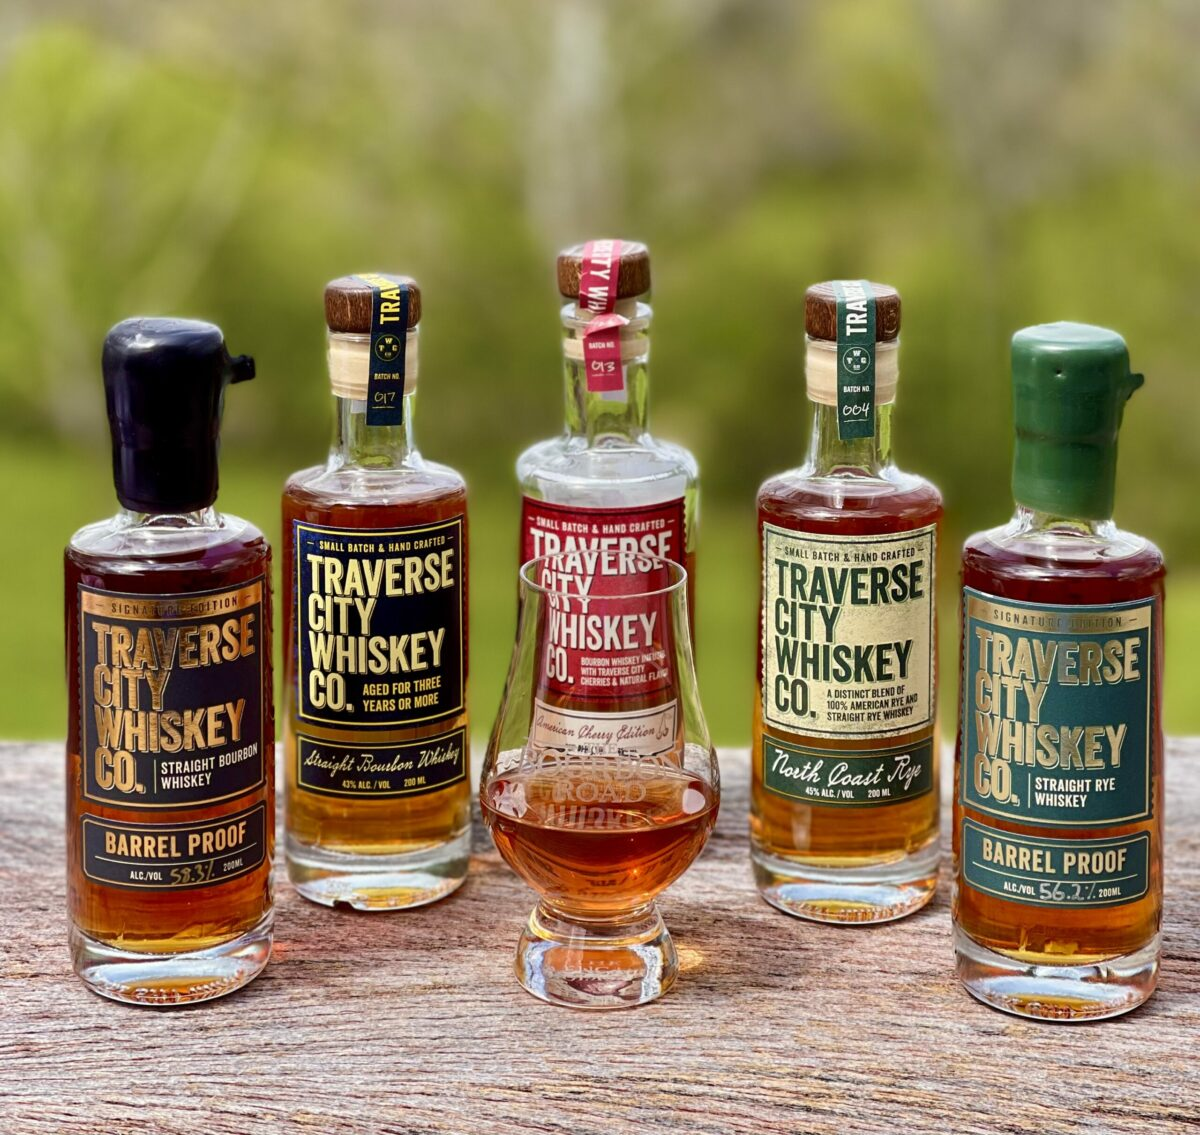 Traverse City Whiskey Company